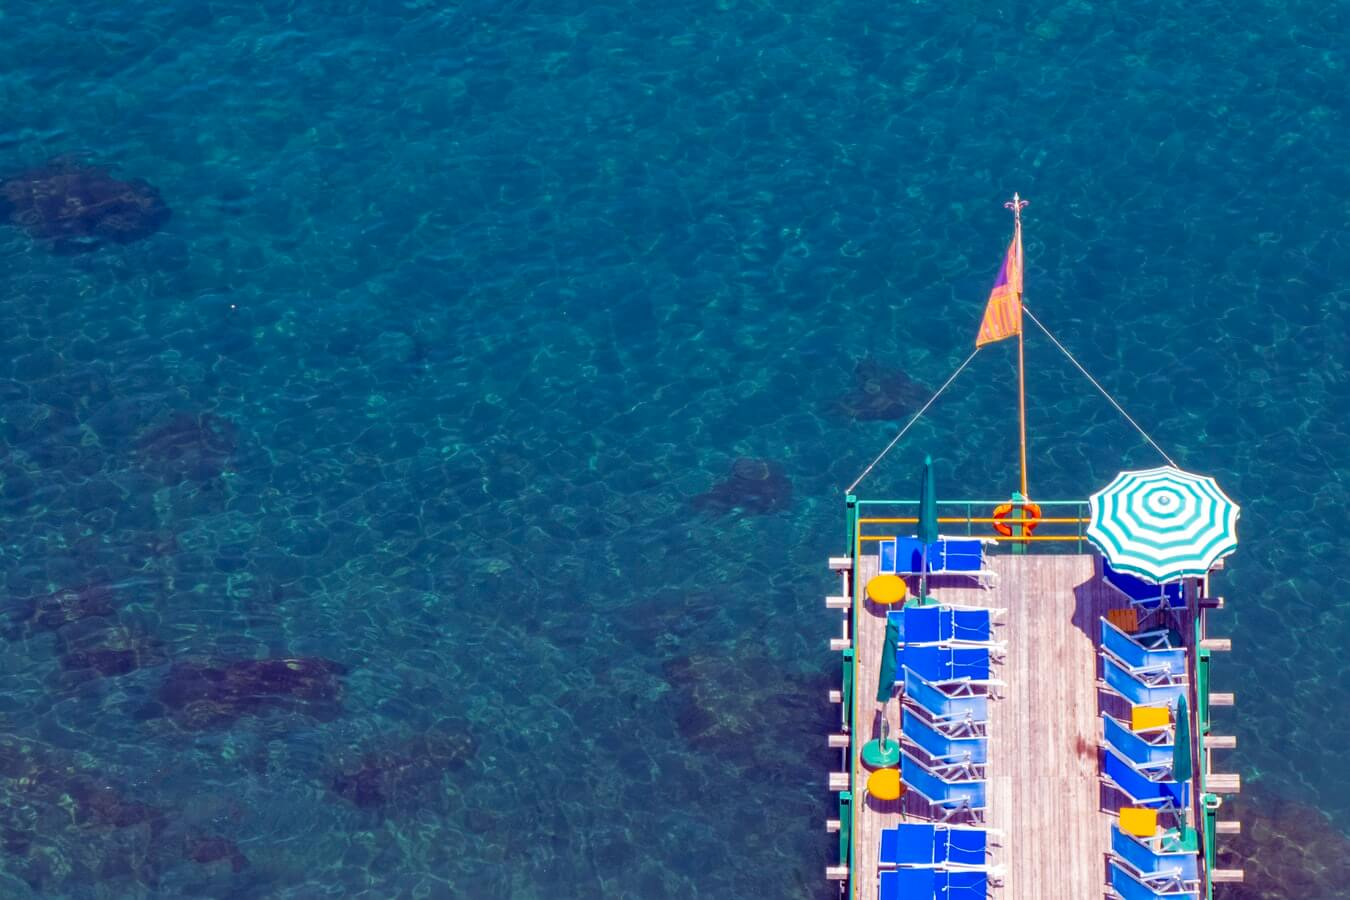 Should you take a pontoon tour on the Great Barrier Reef?